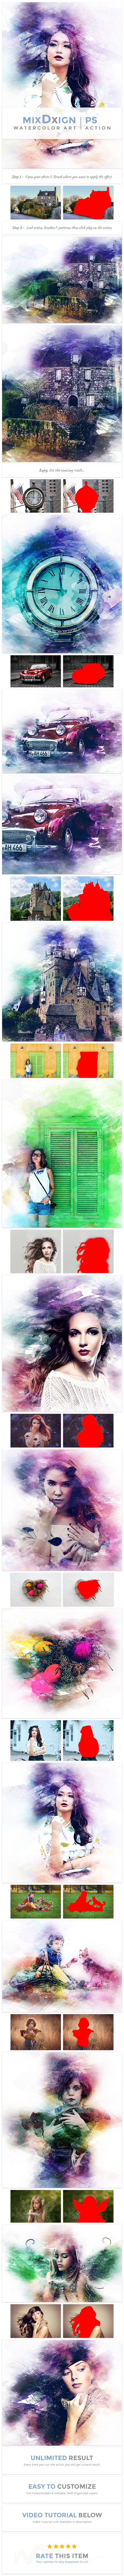 MixDxign Watercolor Art | PS Action - Photo Effects Actions